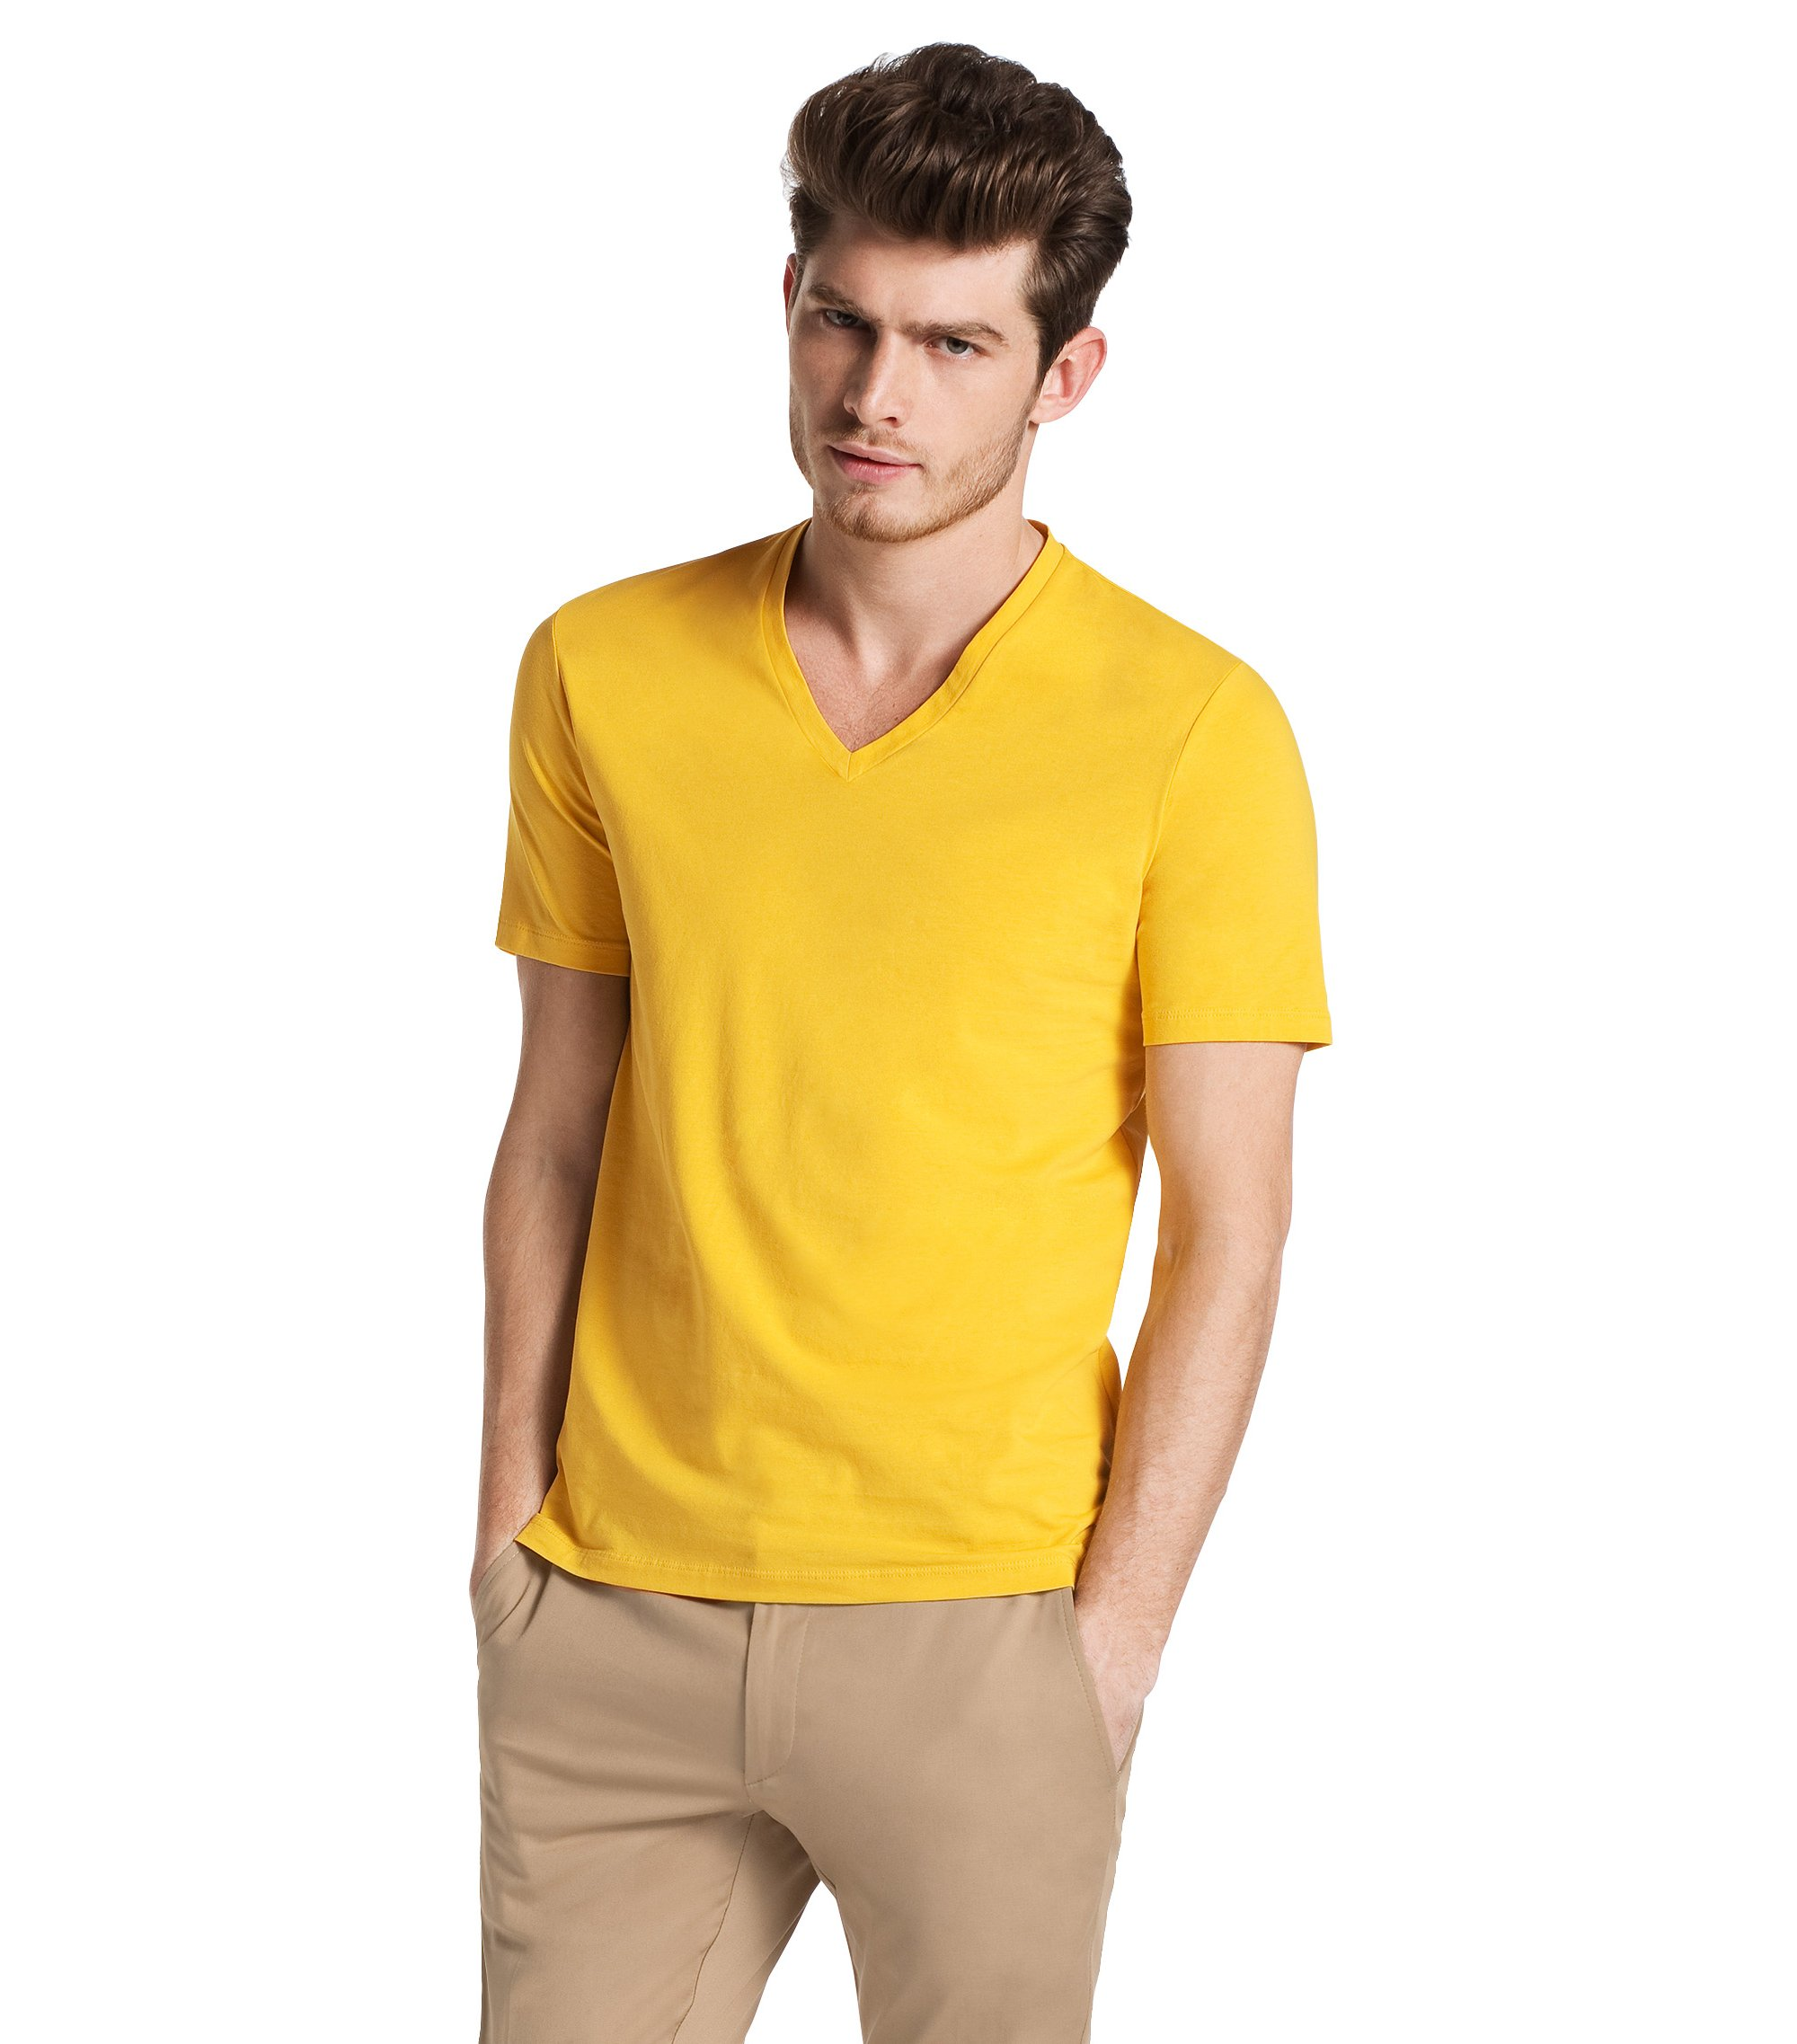 V-neck T-shirt 'Dredoso', Yellow